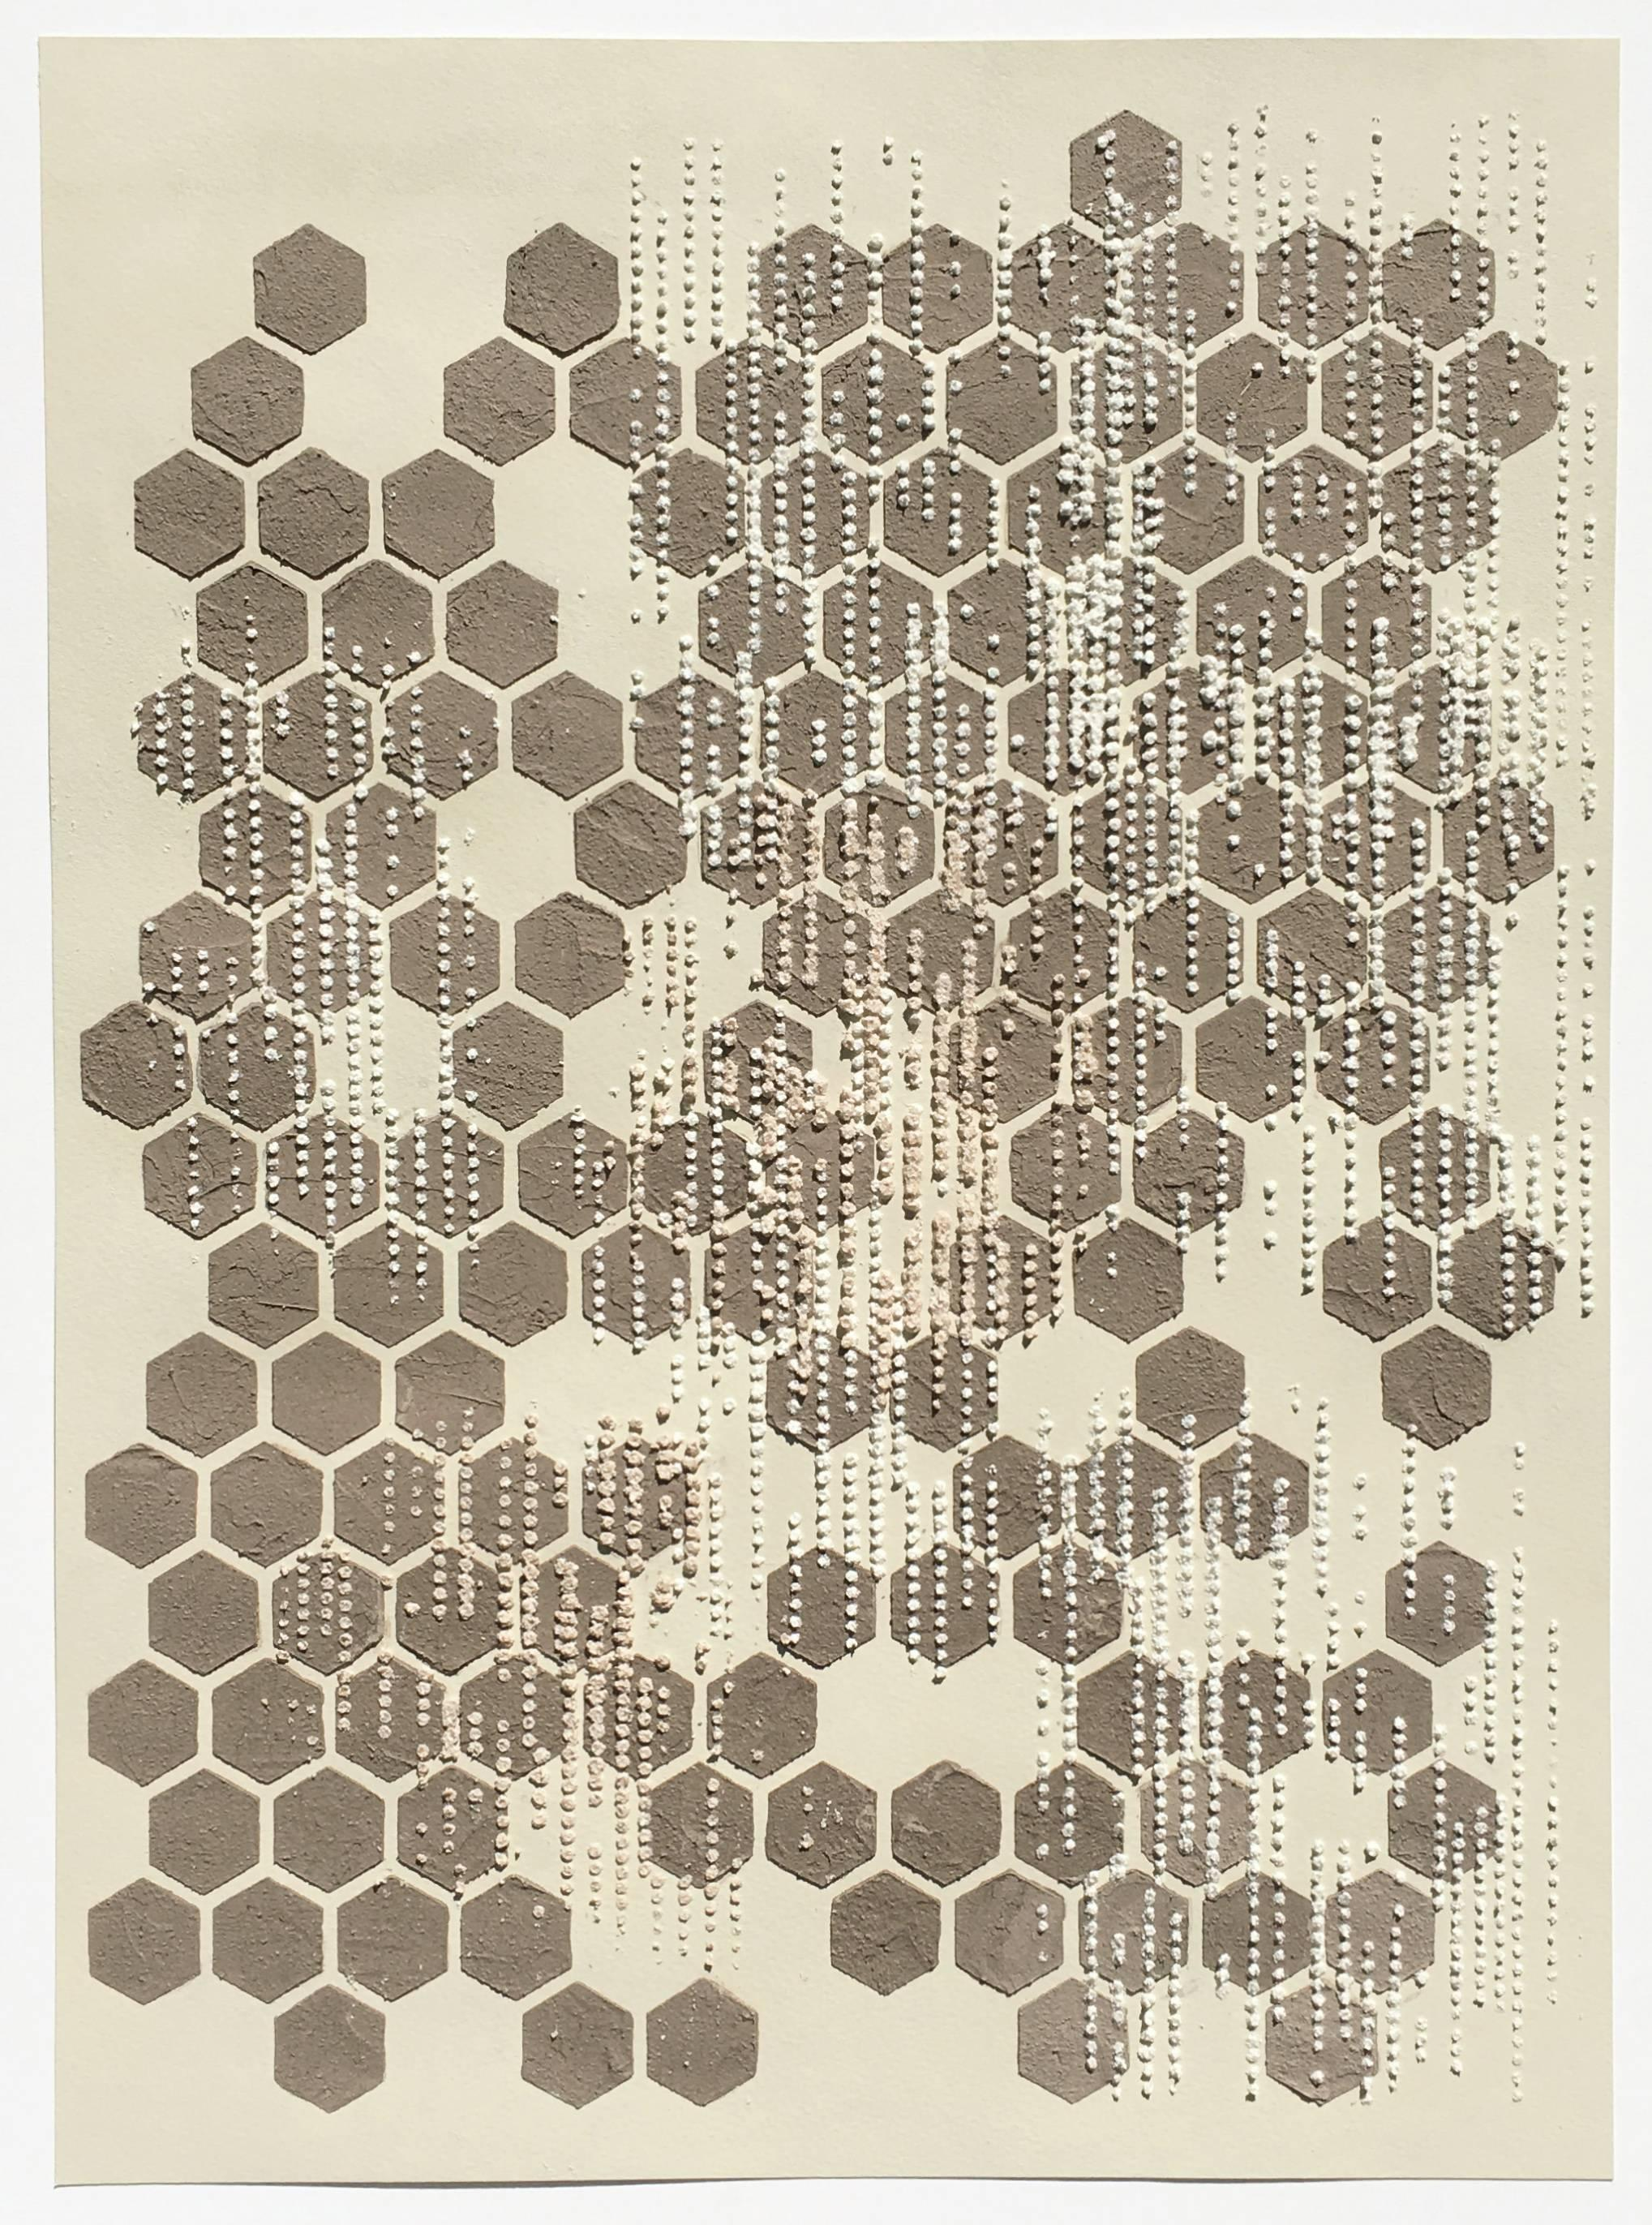 Honey Comb, Eggshell, Mixed Material, Dot Pattern in Brown, White on Cream Paper